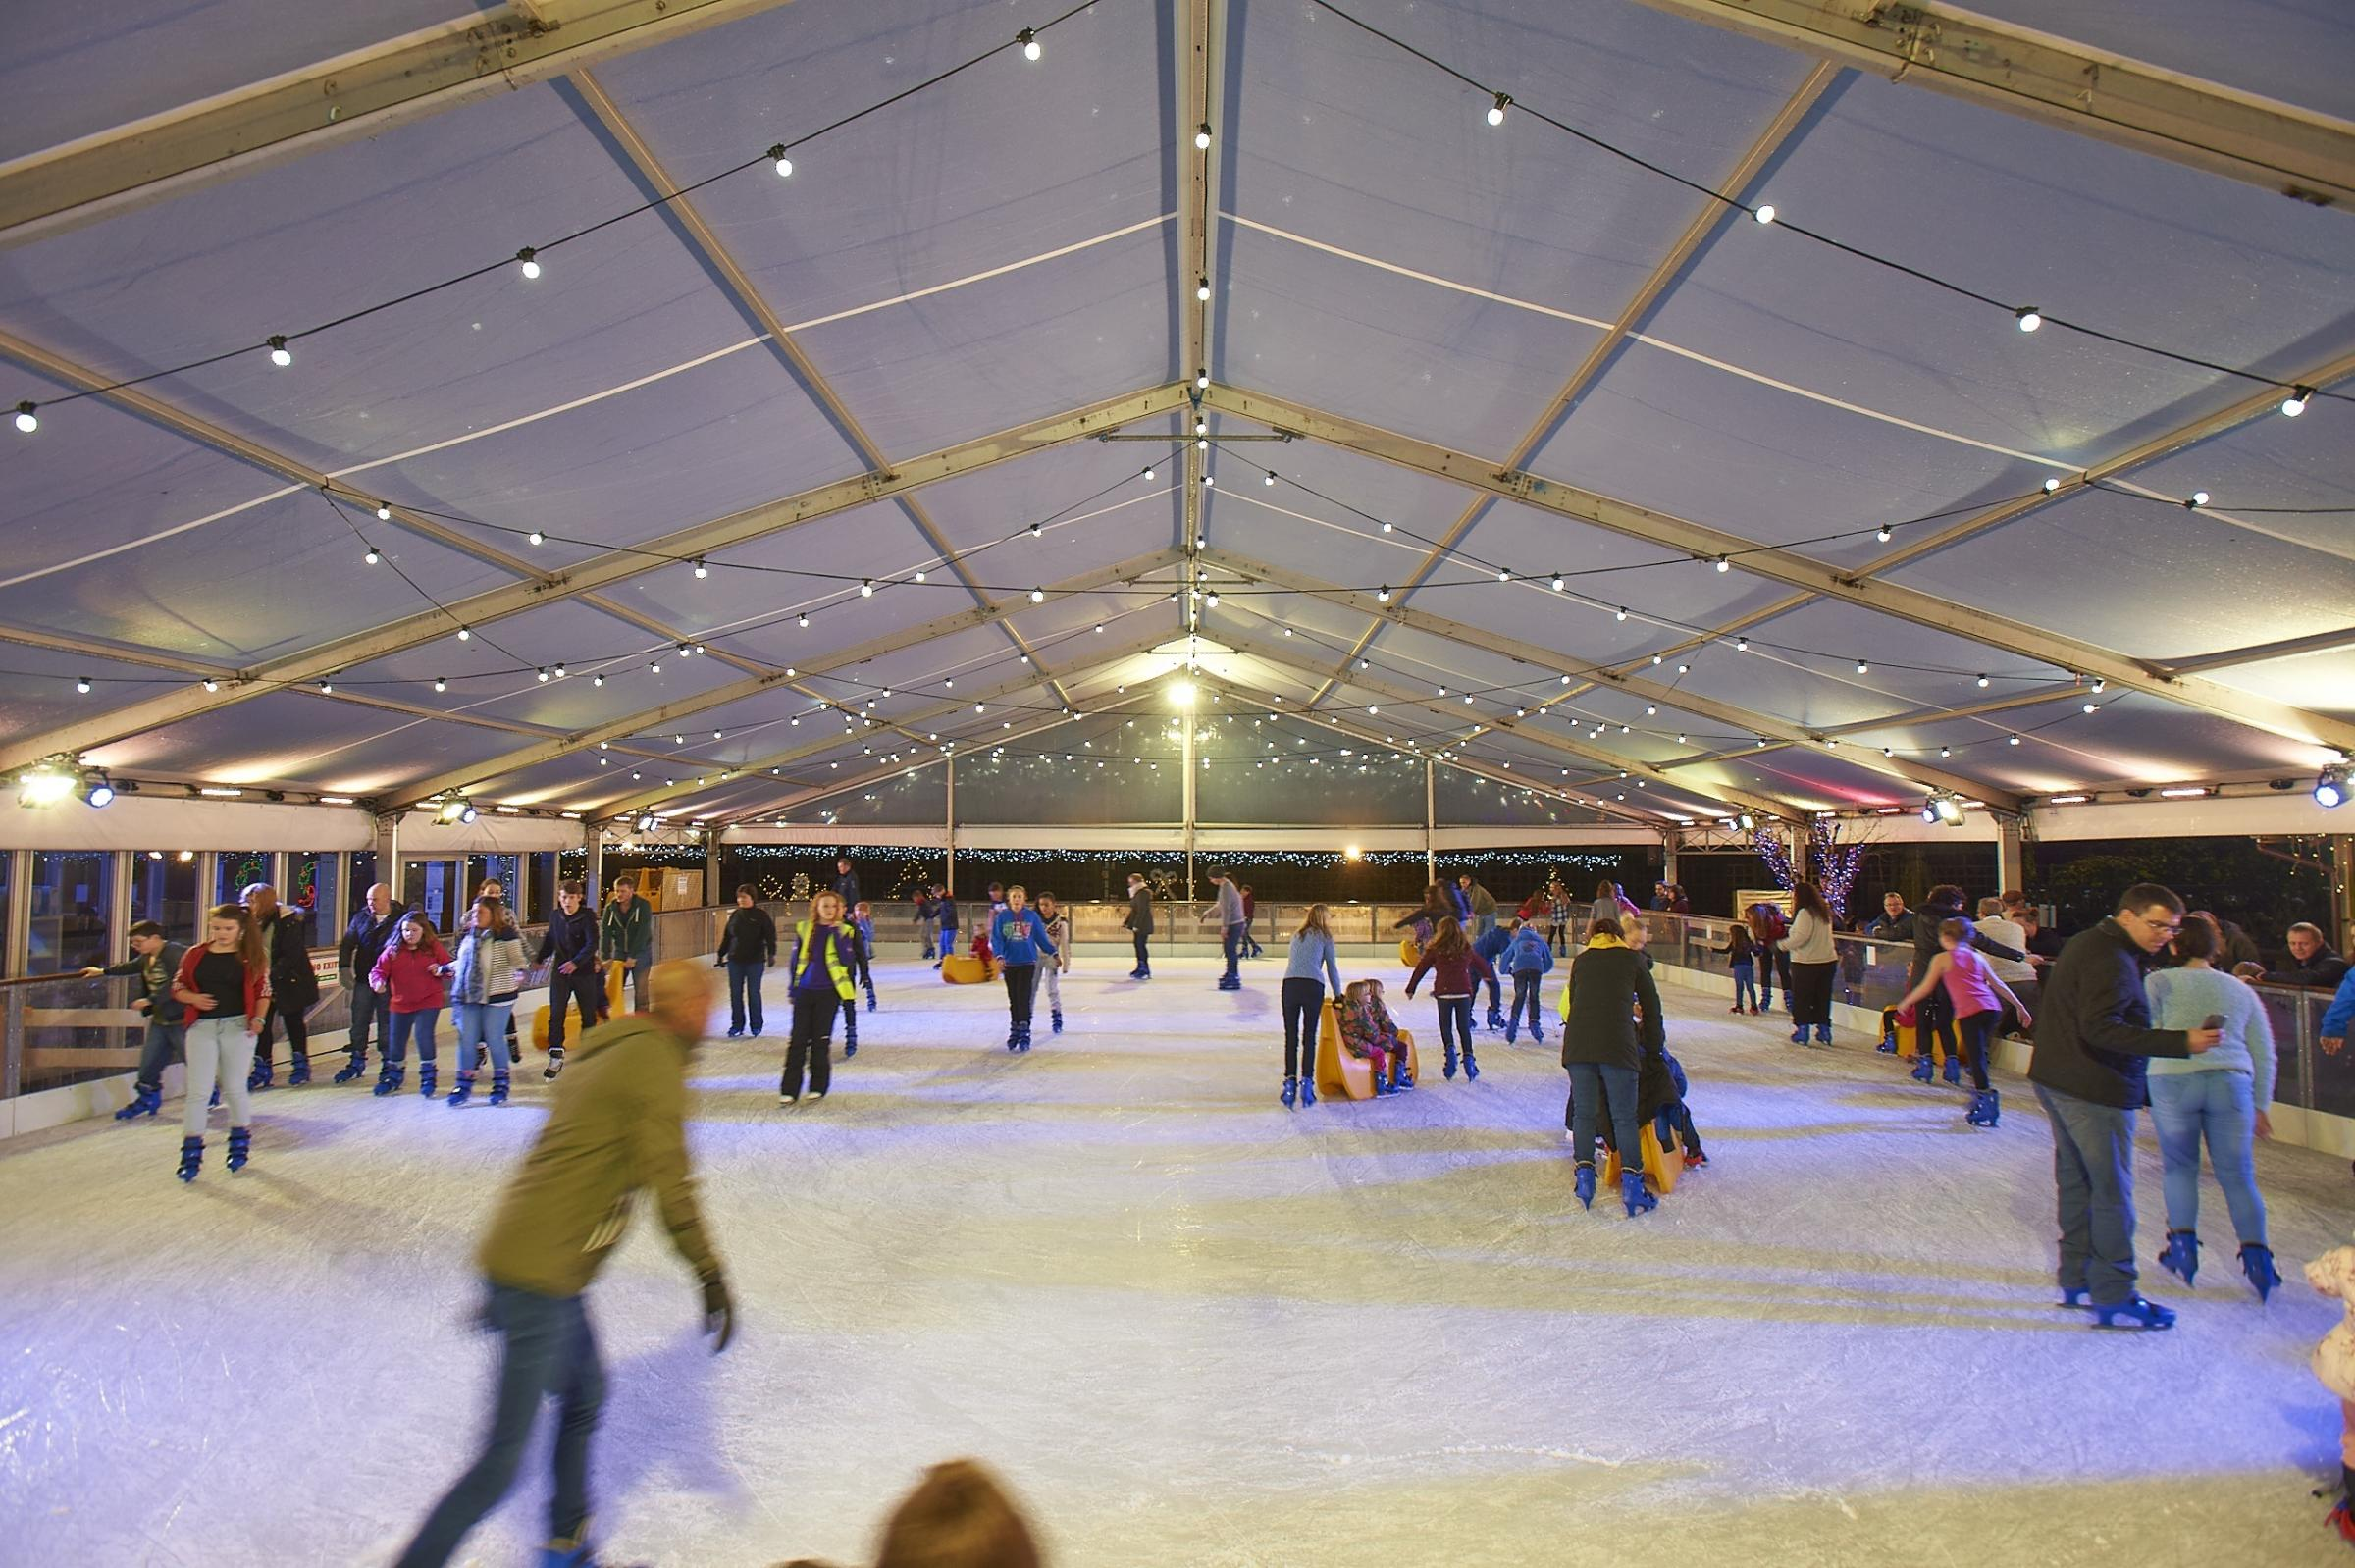 REOPENED: Webbs ice rink